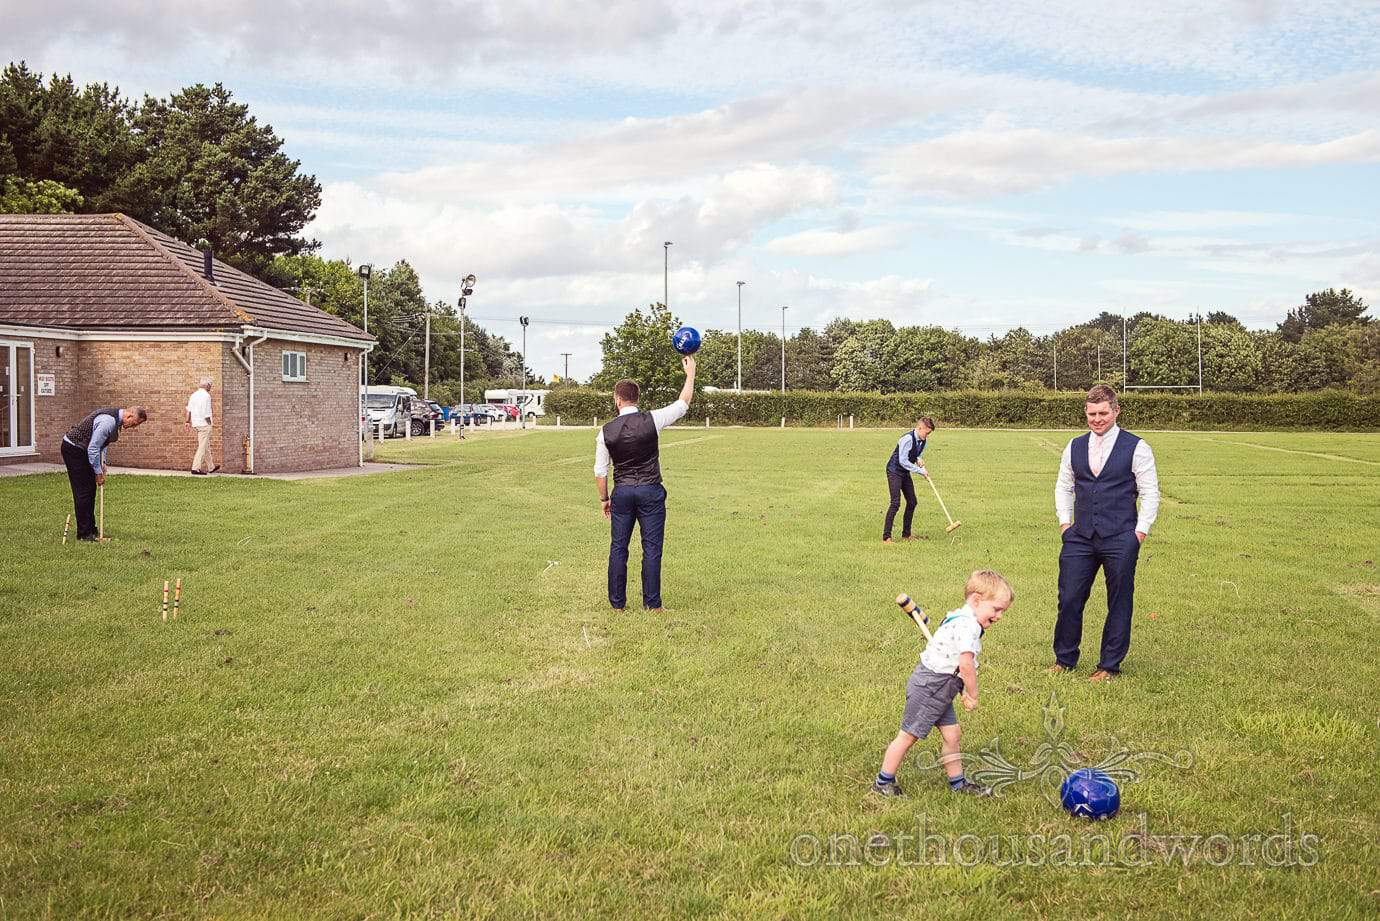 Croquet and football lawn games at Wareham Rugby Club Wedding